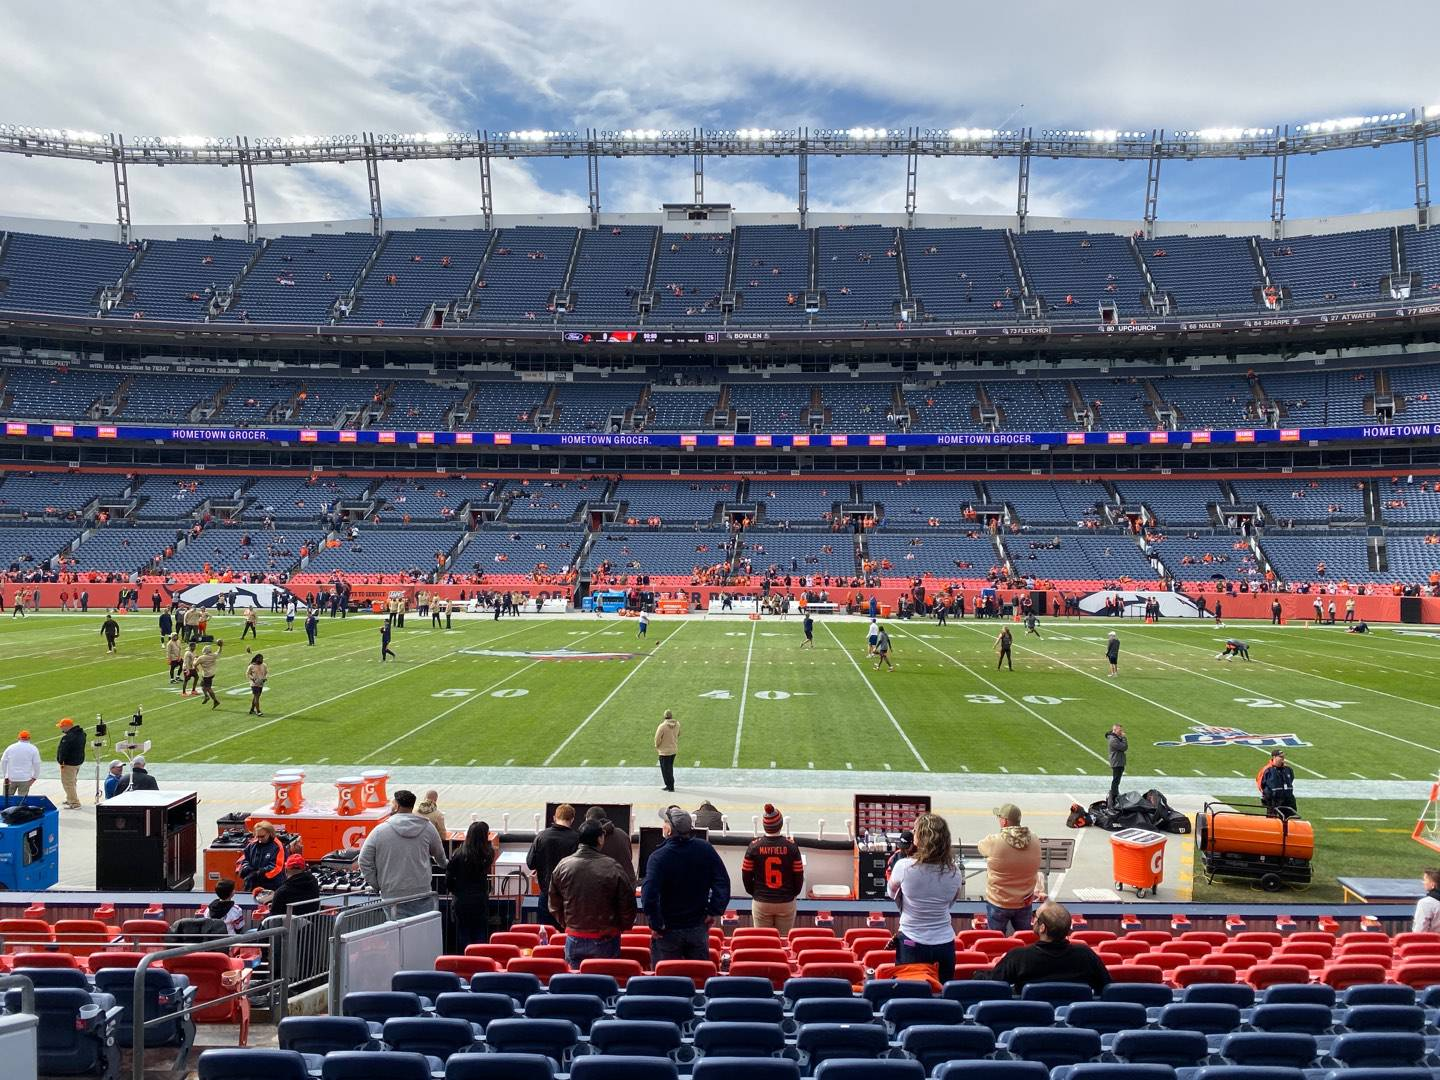 Empower Field at Mile High Stadium Section 122 Row 14 Seat 17